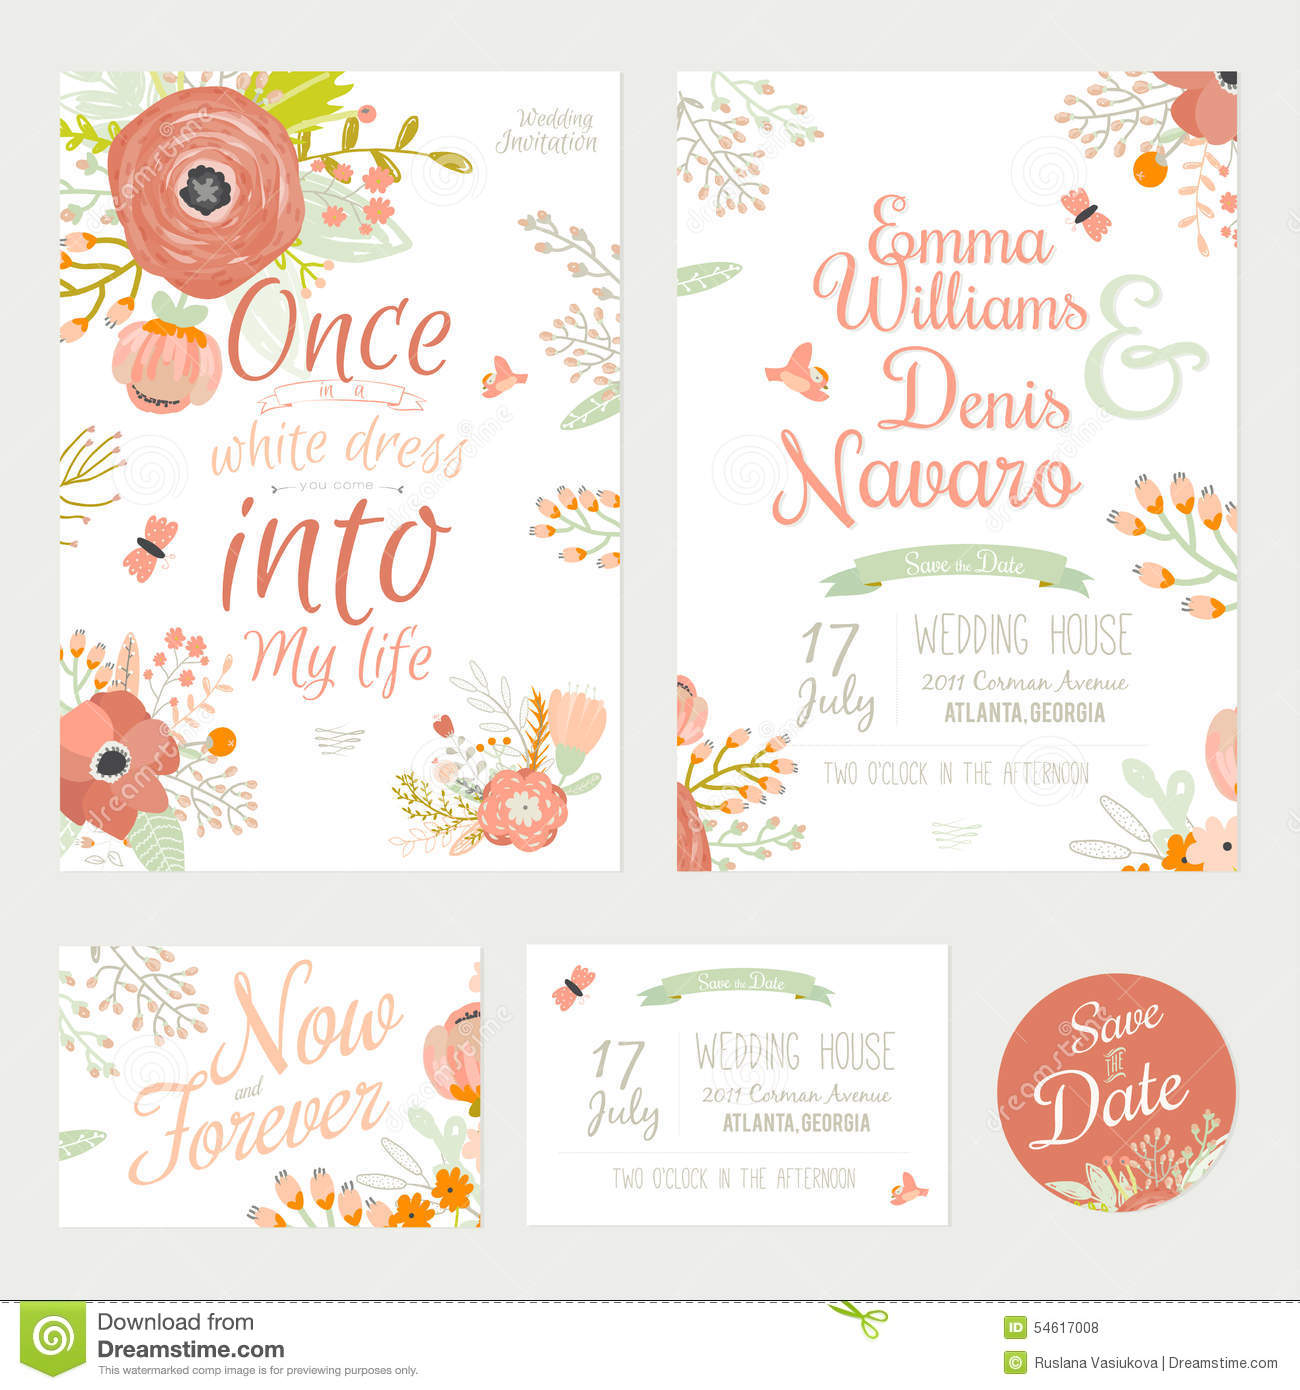 Vintage romantic floral save the date invitation stock for Vintage save the date templates free